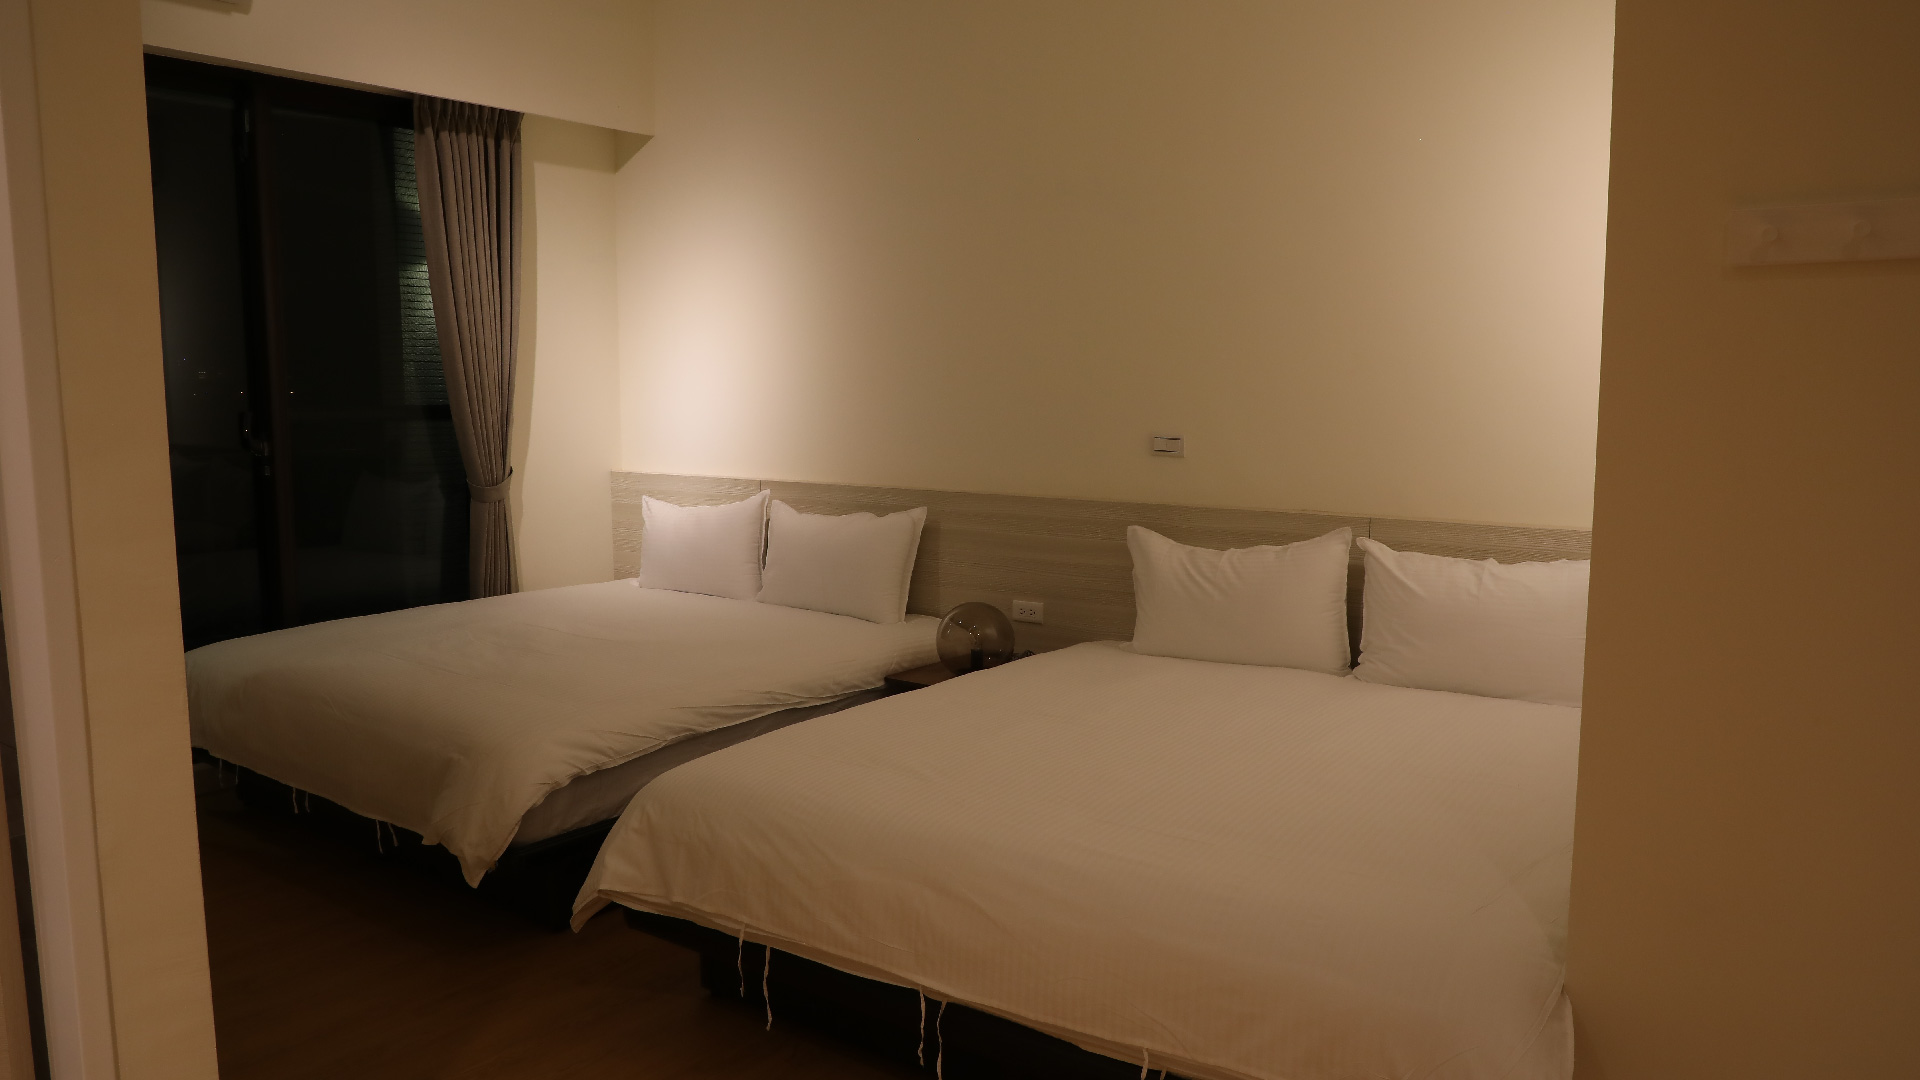 Rooms-58_602-1